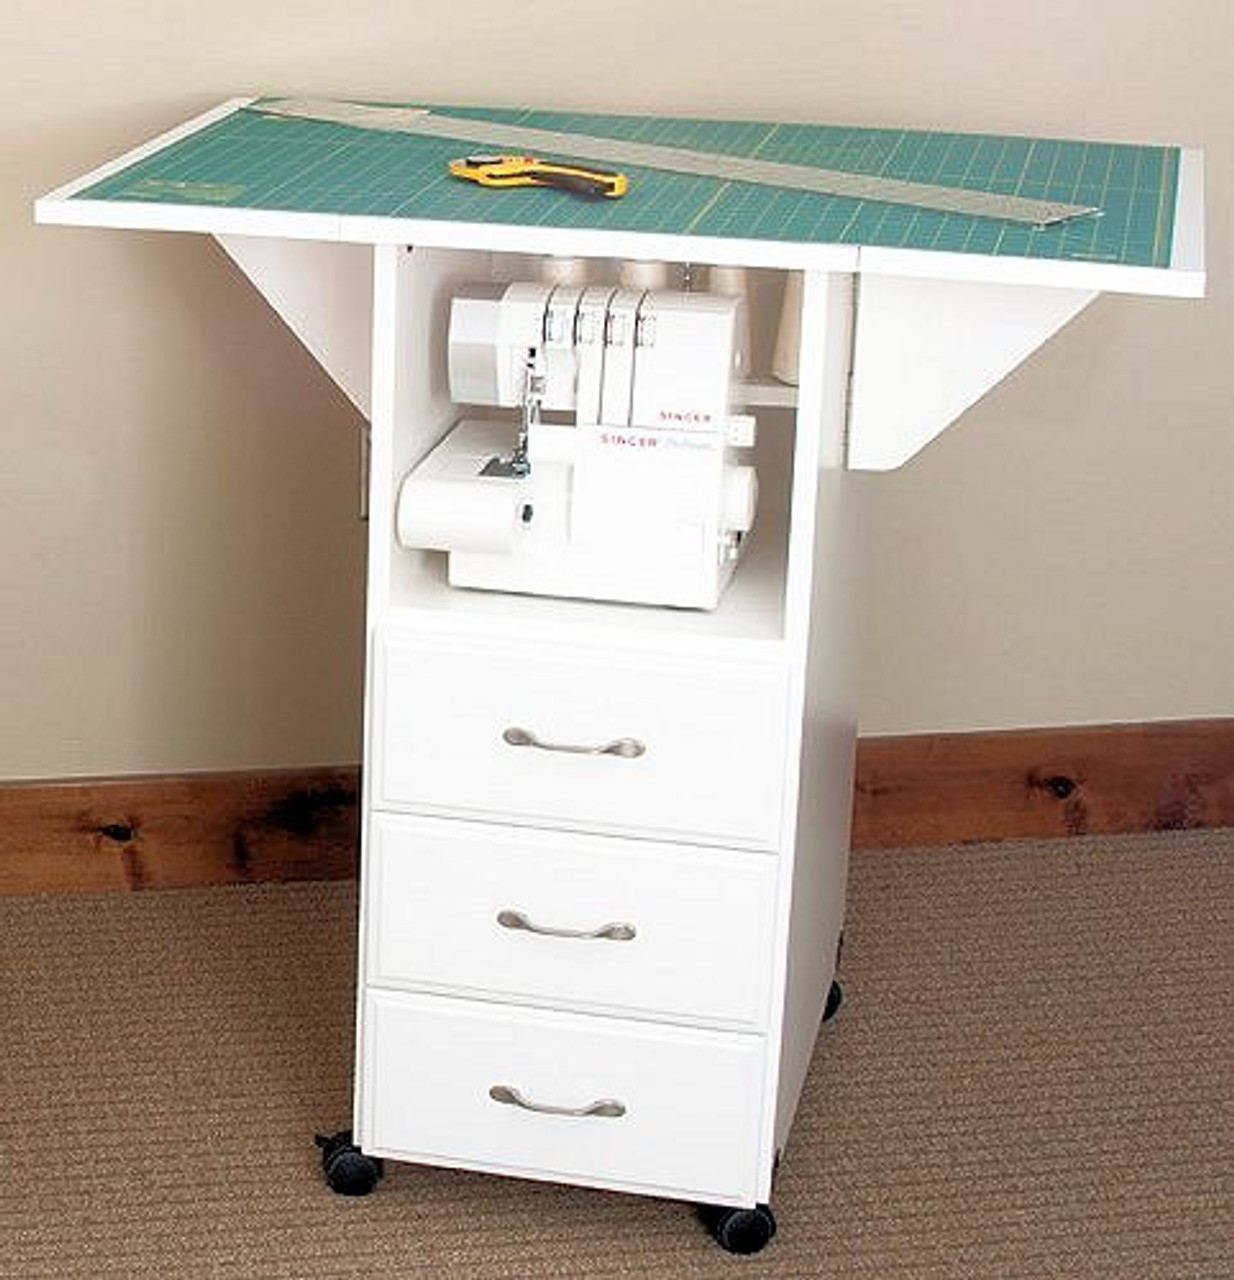 Cutting Kitchen Cabinets: Fashion Sewing Cabinets 93c Cutting And Craft Table $795